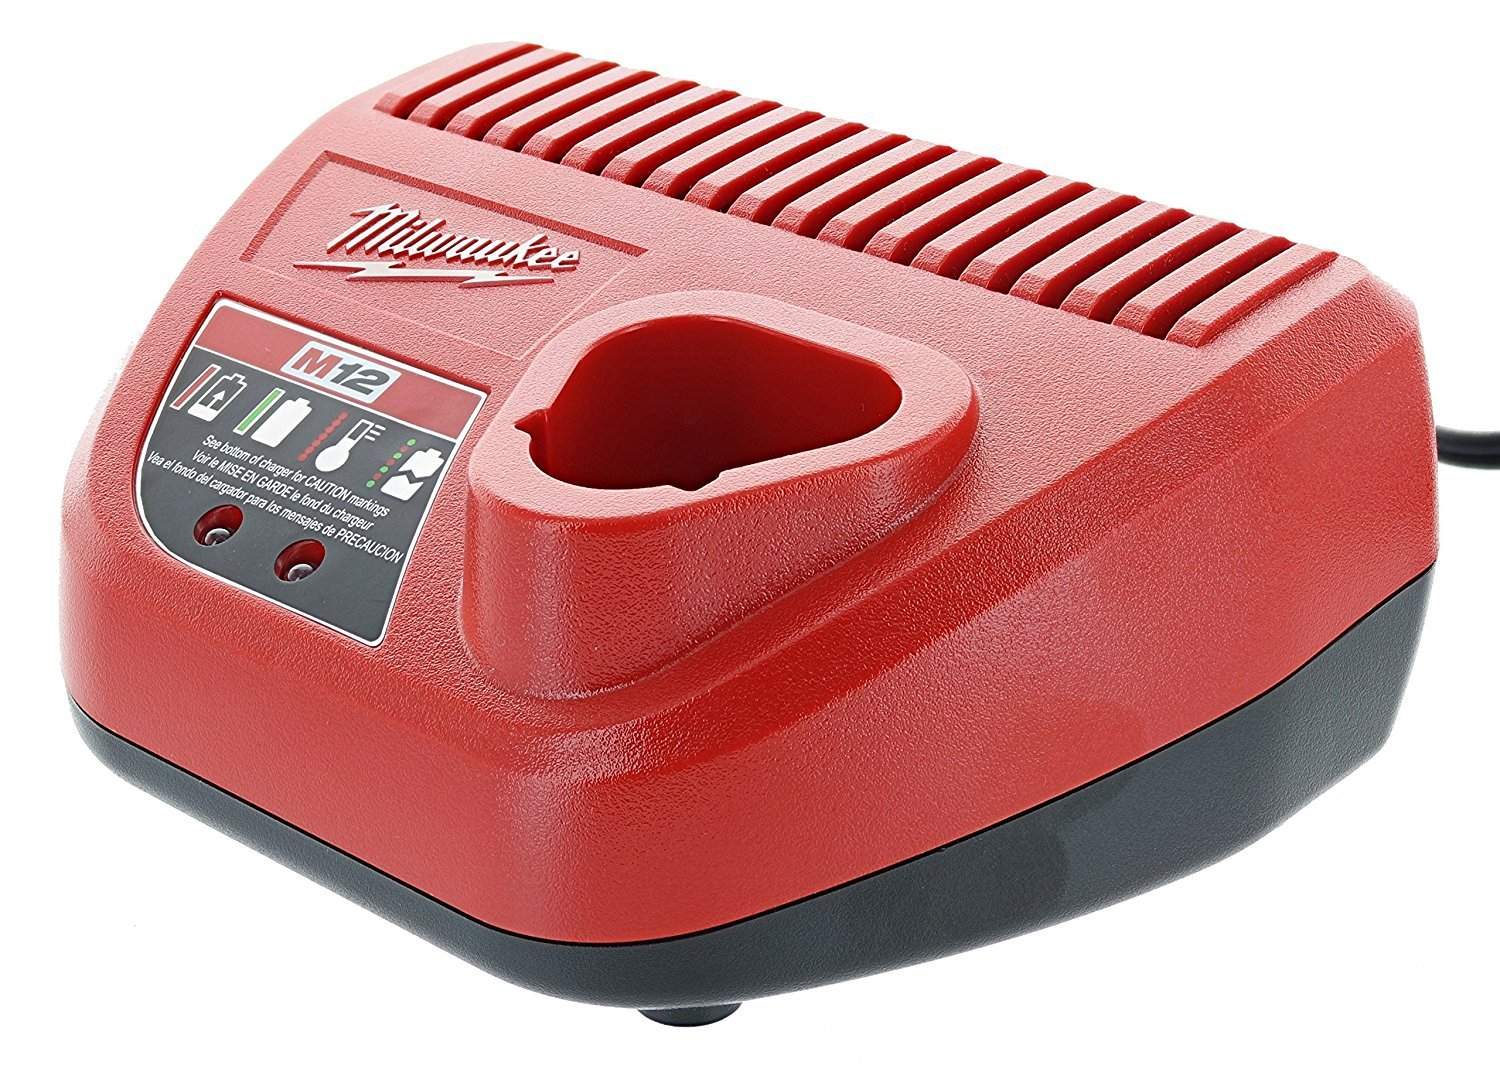 Milwaukee M12 12-Volt Lithium-Ion Battery Charger (48-59-2401)